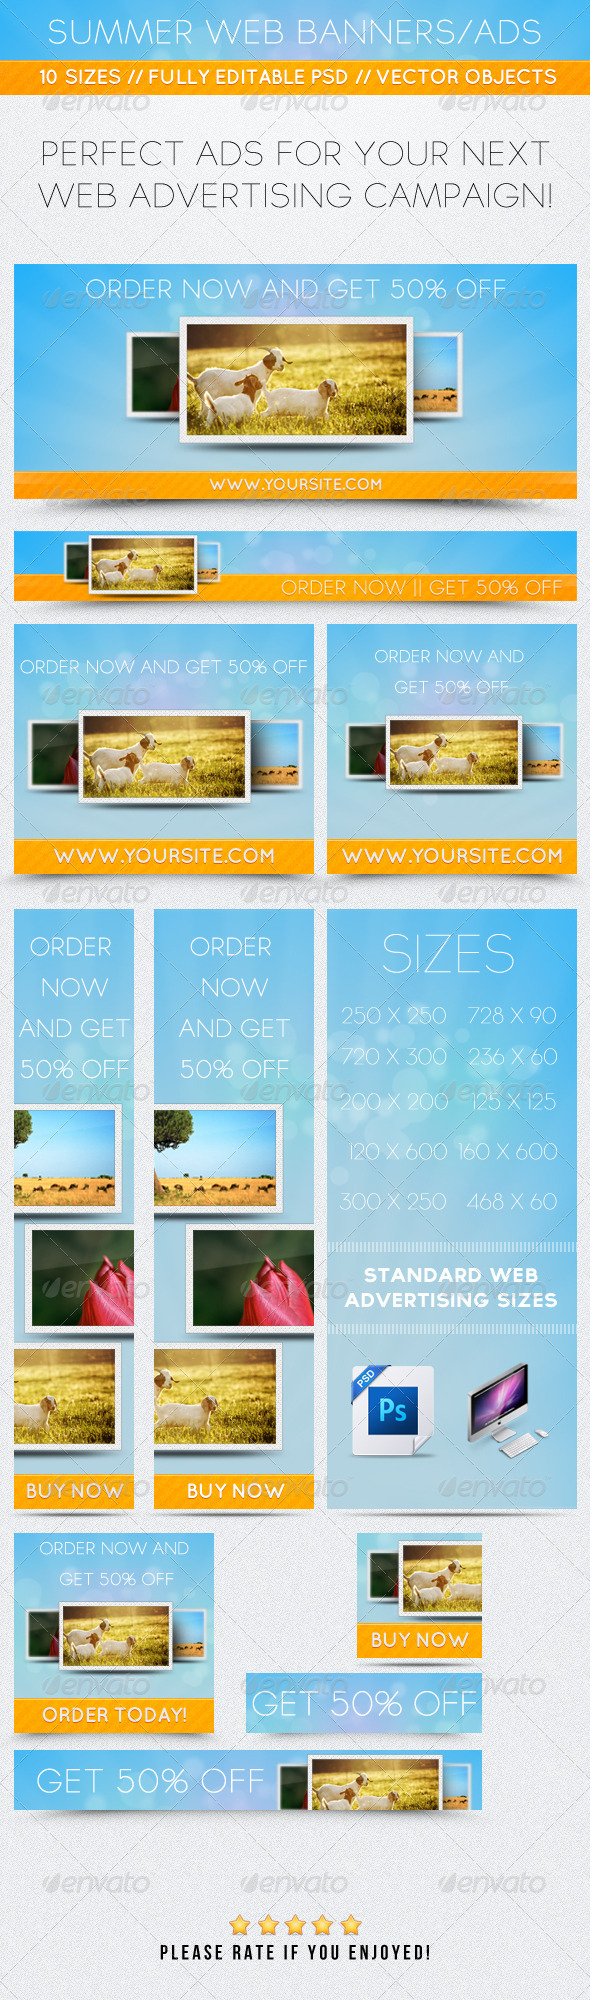 GraphicRiver Summer Web Banners Ads 2381119